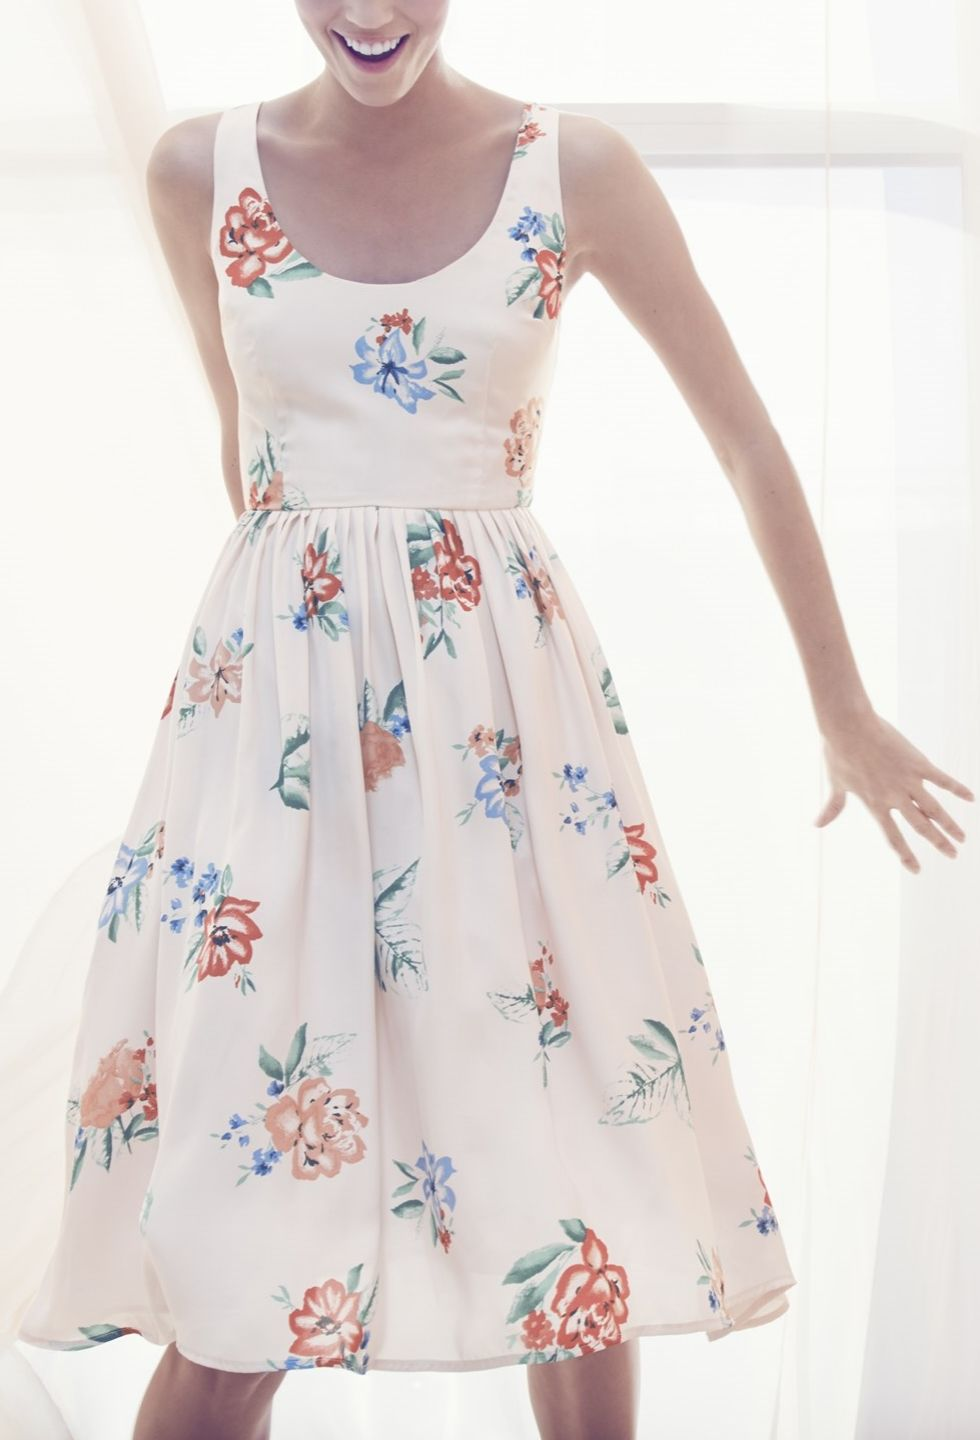 Fabulous Spring & Summer Dresses | Print..., Summer and So cute